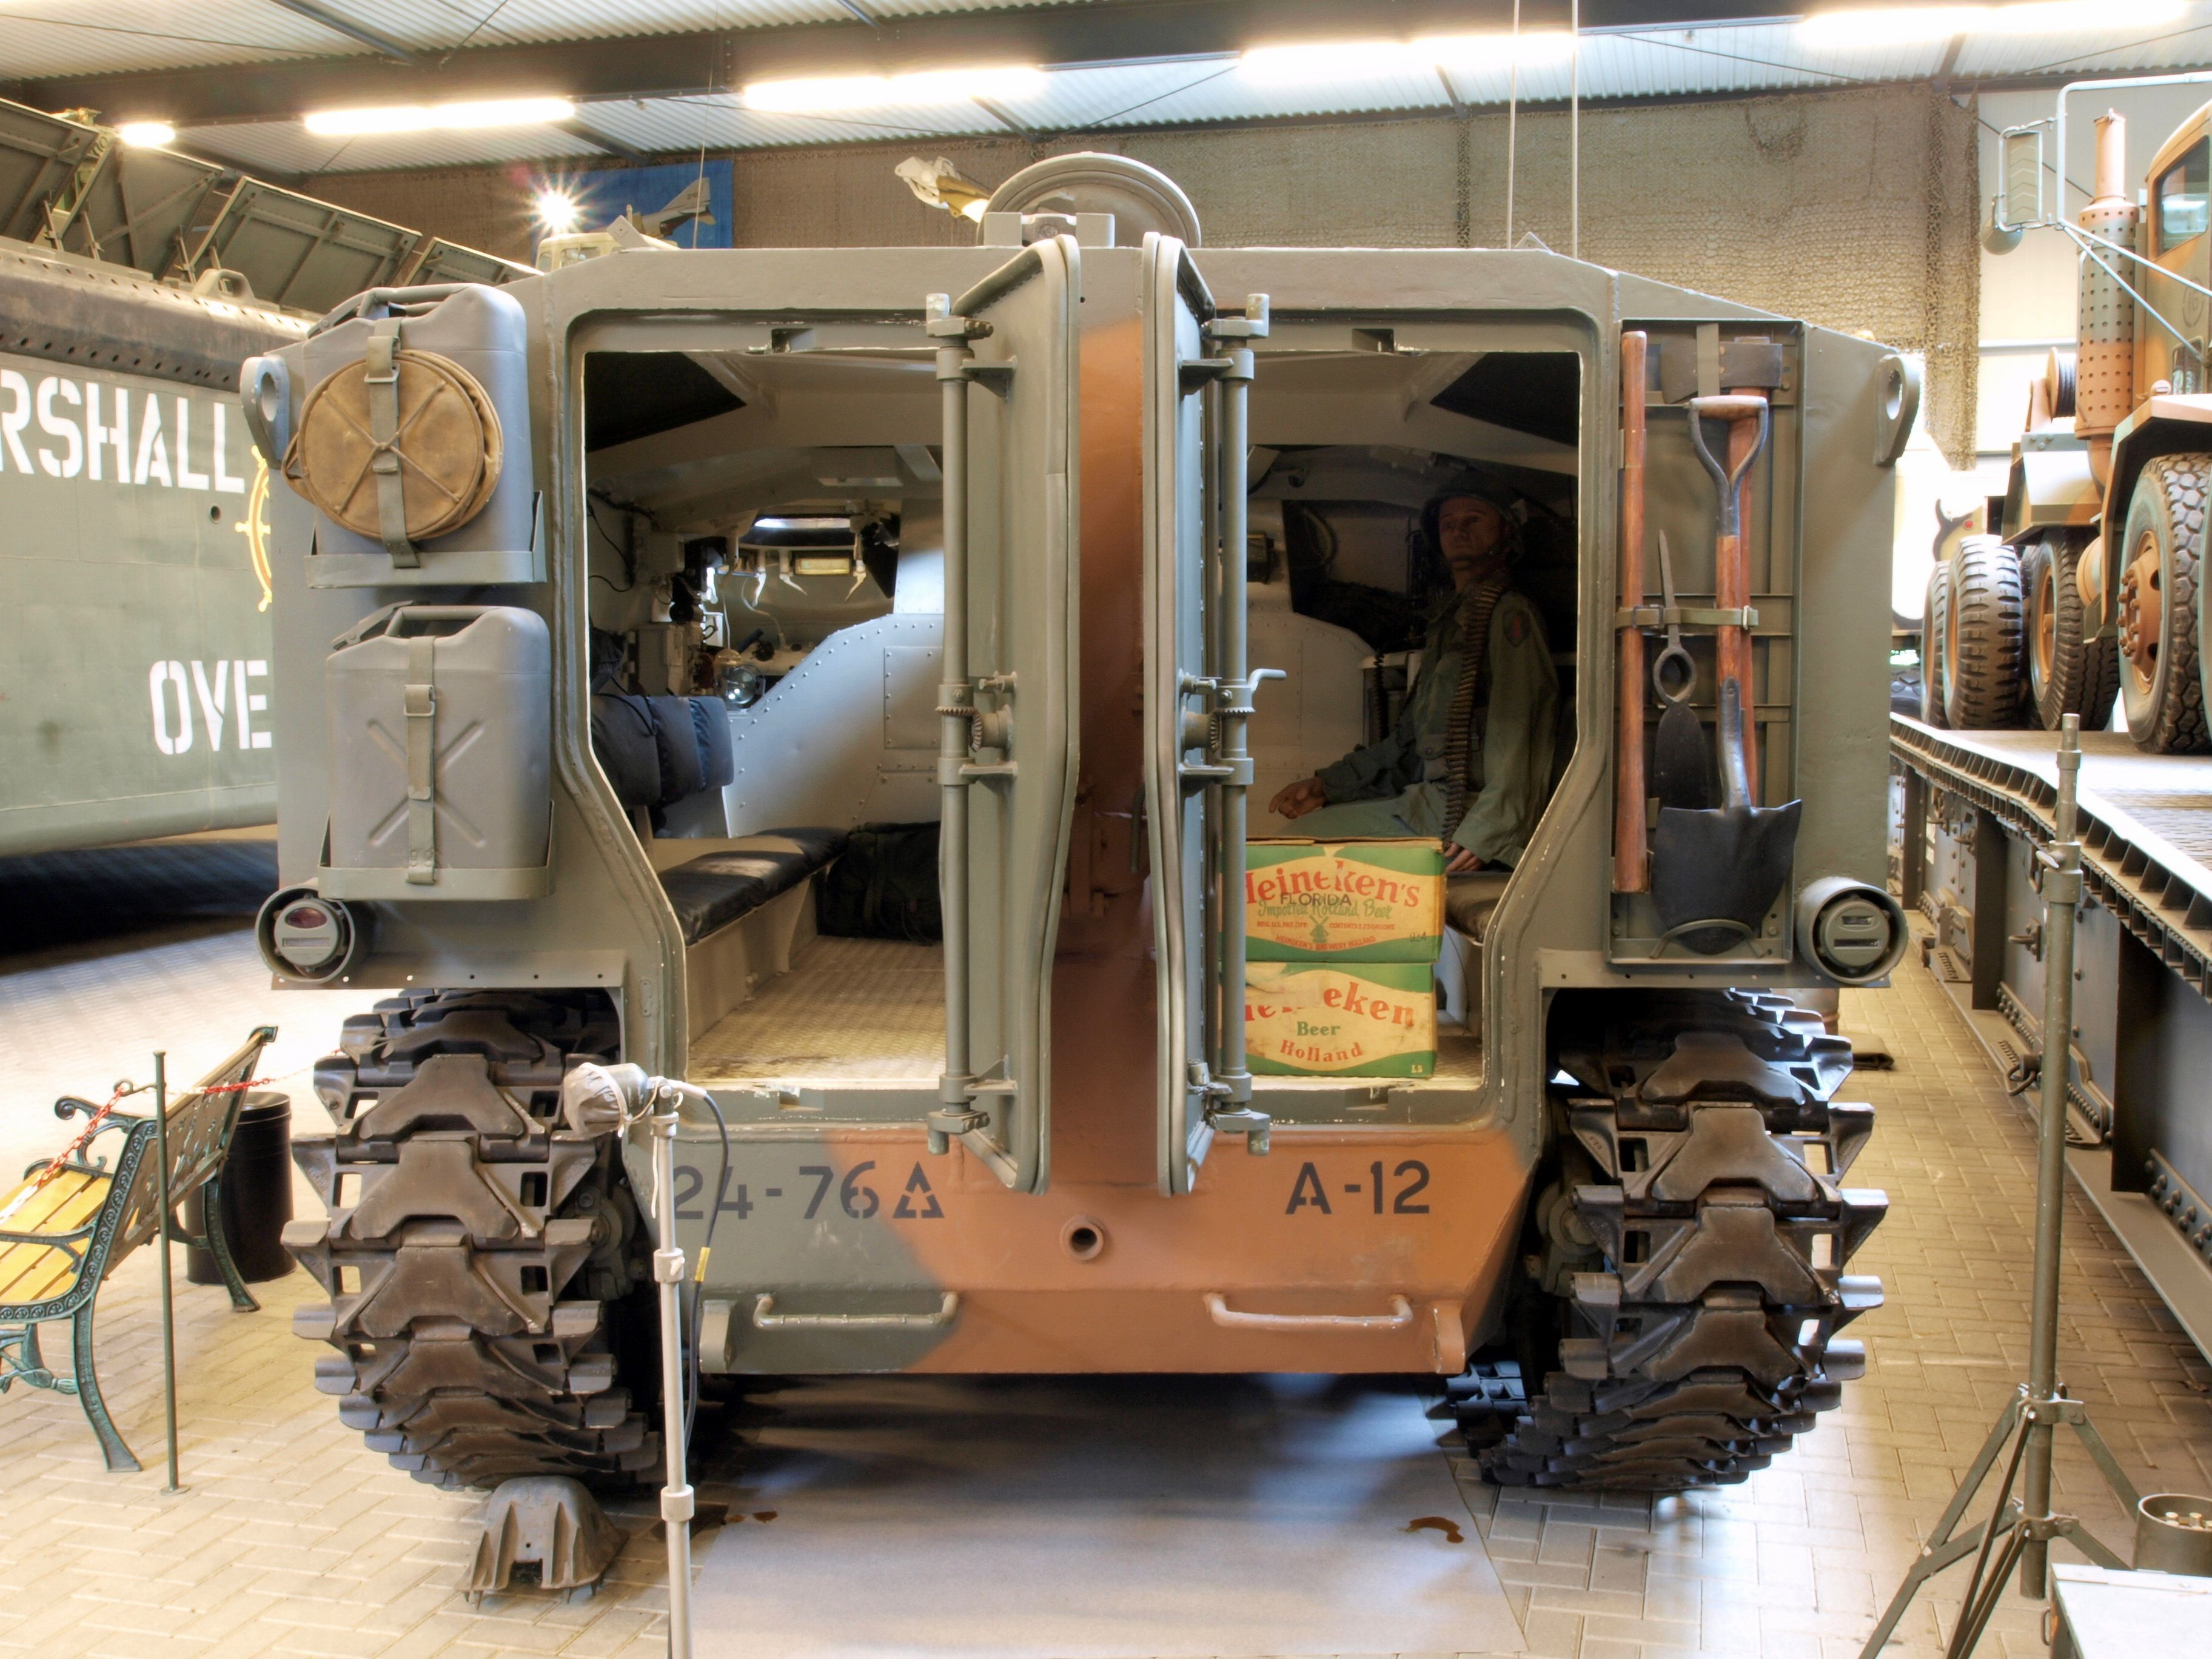 20+ Zombie Armored Personnel Carriers Pictures and Ideas on Weric